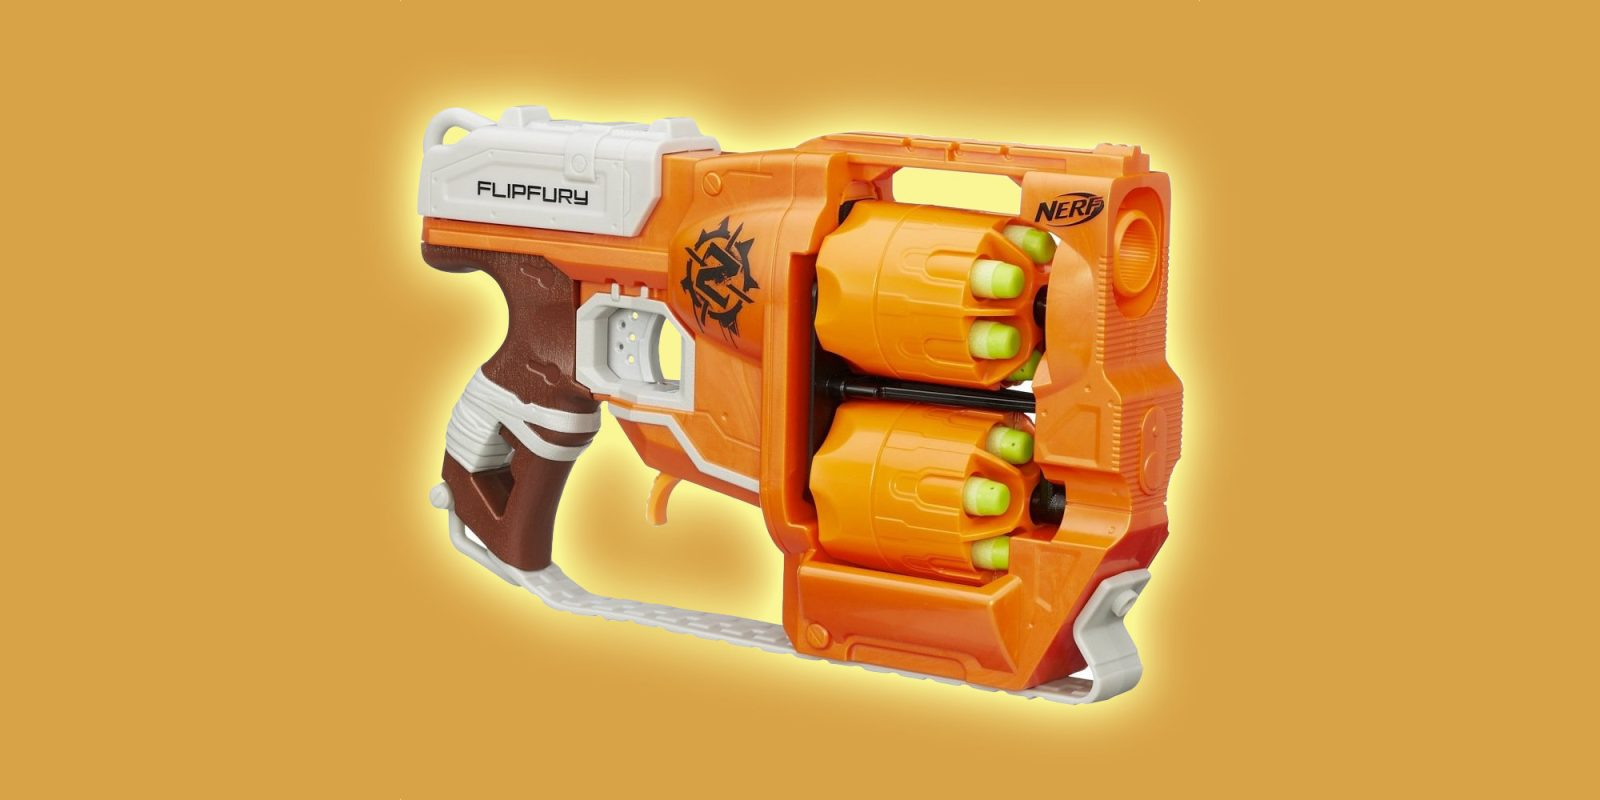 Nerf's $10 FlipFury Blaster is a chill way to blow off some steam (40% off)